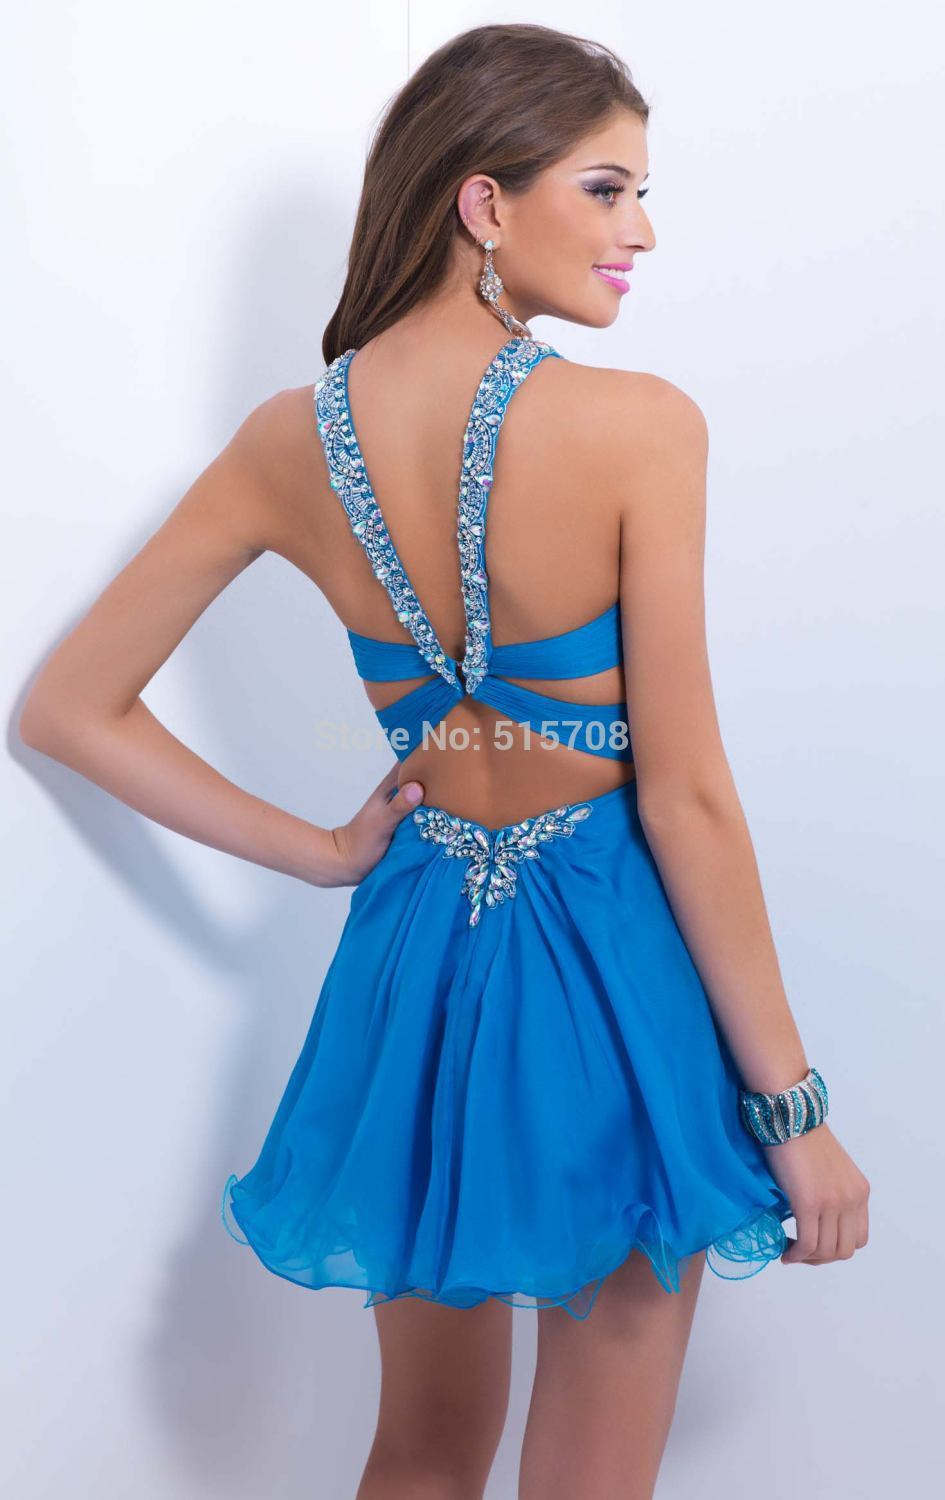 Aliexpress.com : Buy Cheap Simple High Quality 2015 Sexy Girl Prom ...